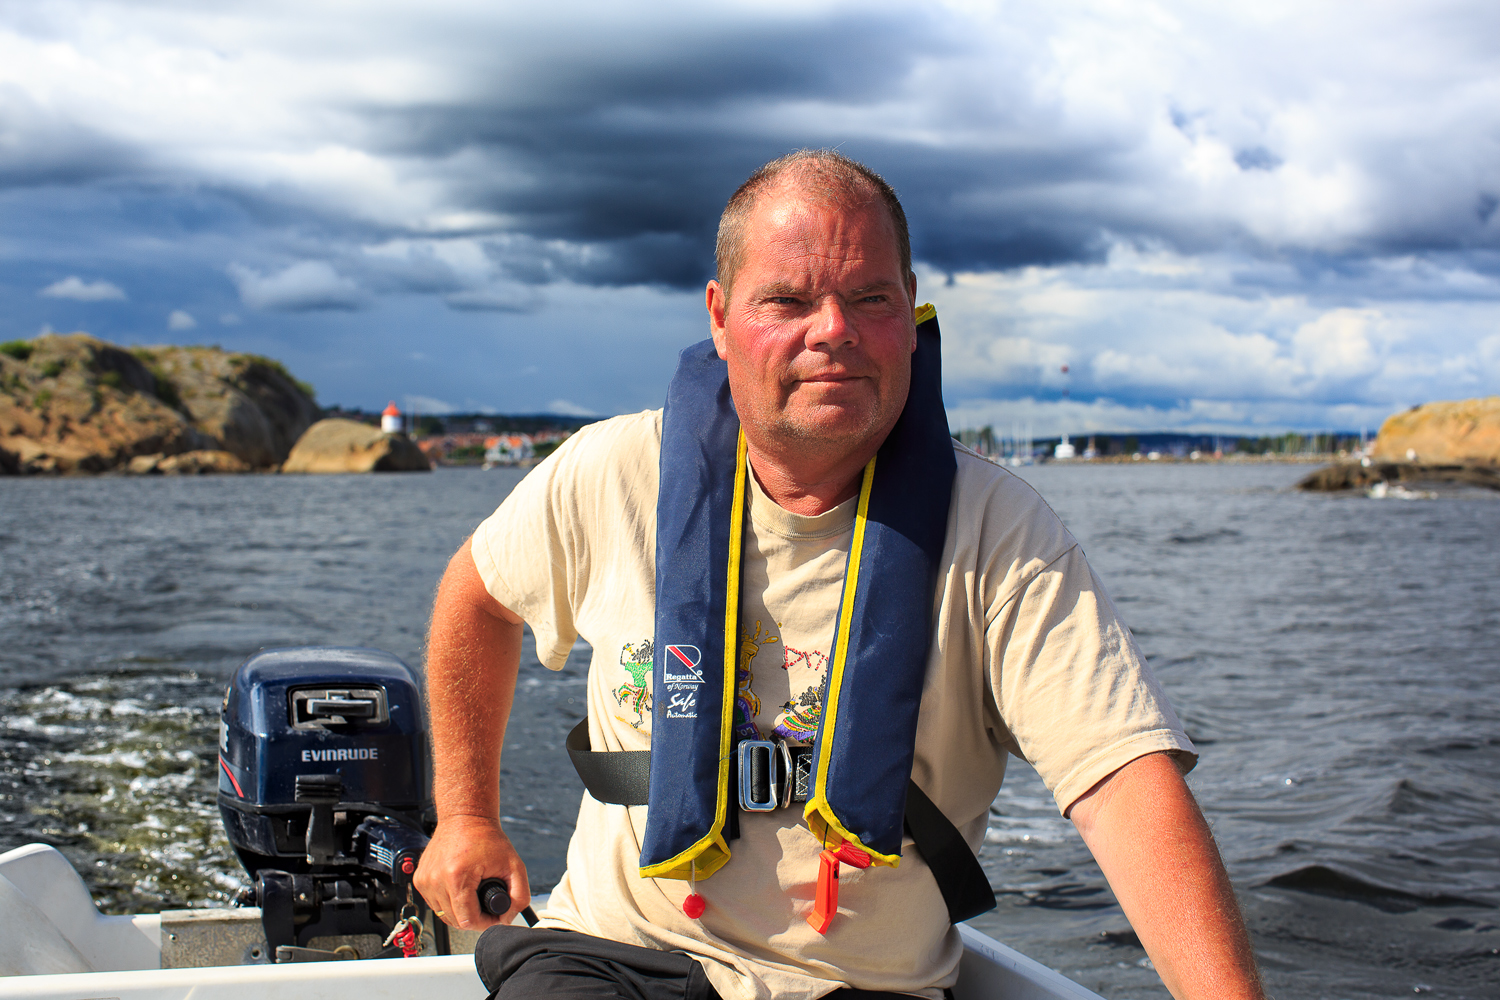 One of the famous men in Stavern can take you out to the lighthouse.Arrange your own boat tour by calling: +4791 14 68 14 or +47 911 23222